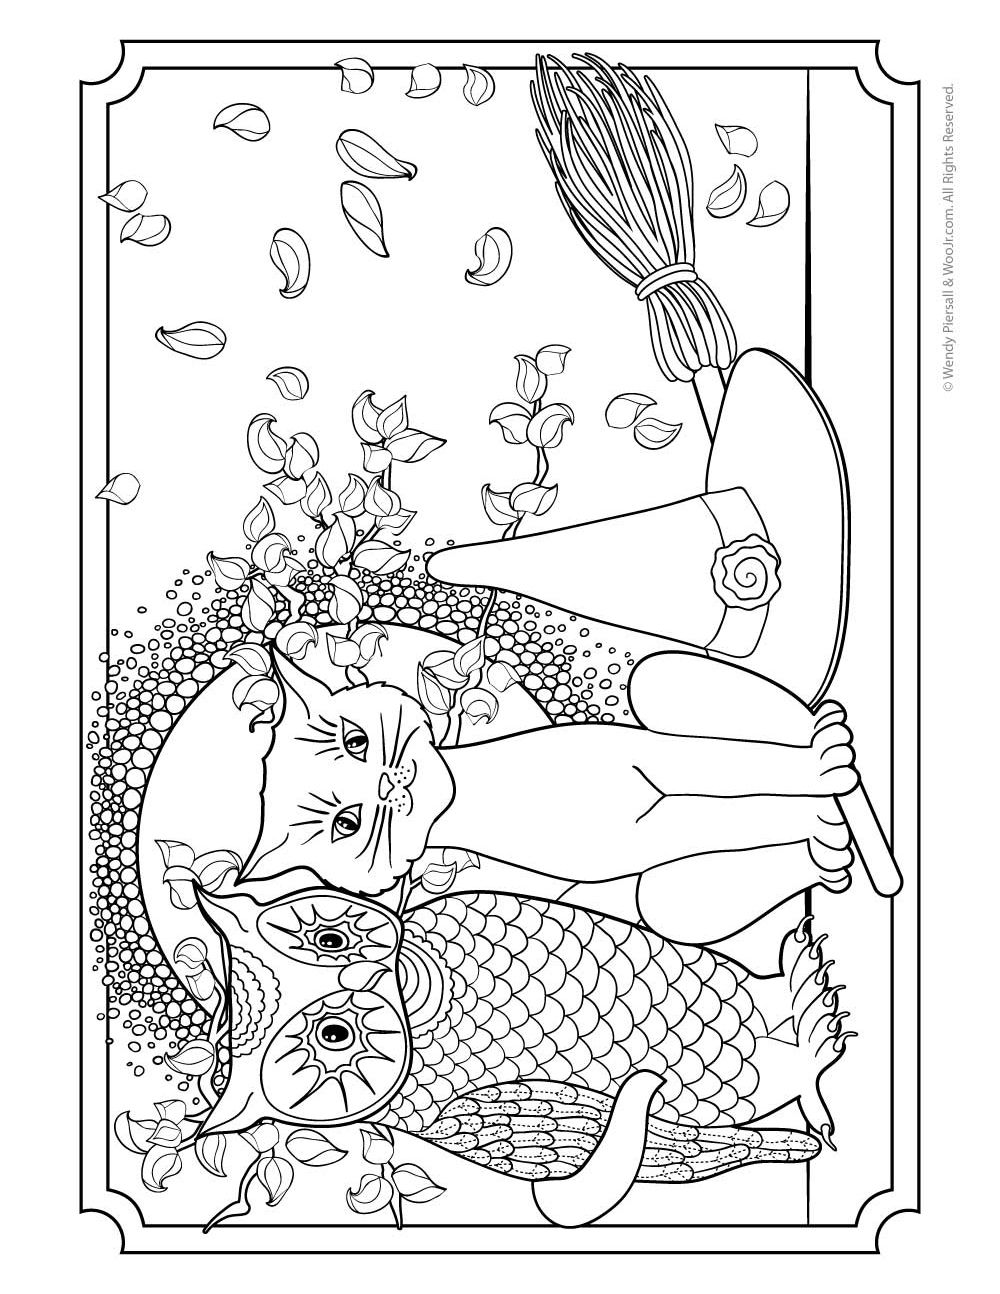 Owl Pussycat and Witches Hat Adult Coloring Page to Print